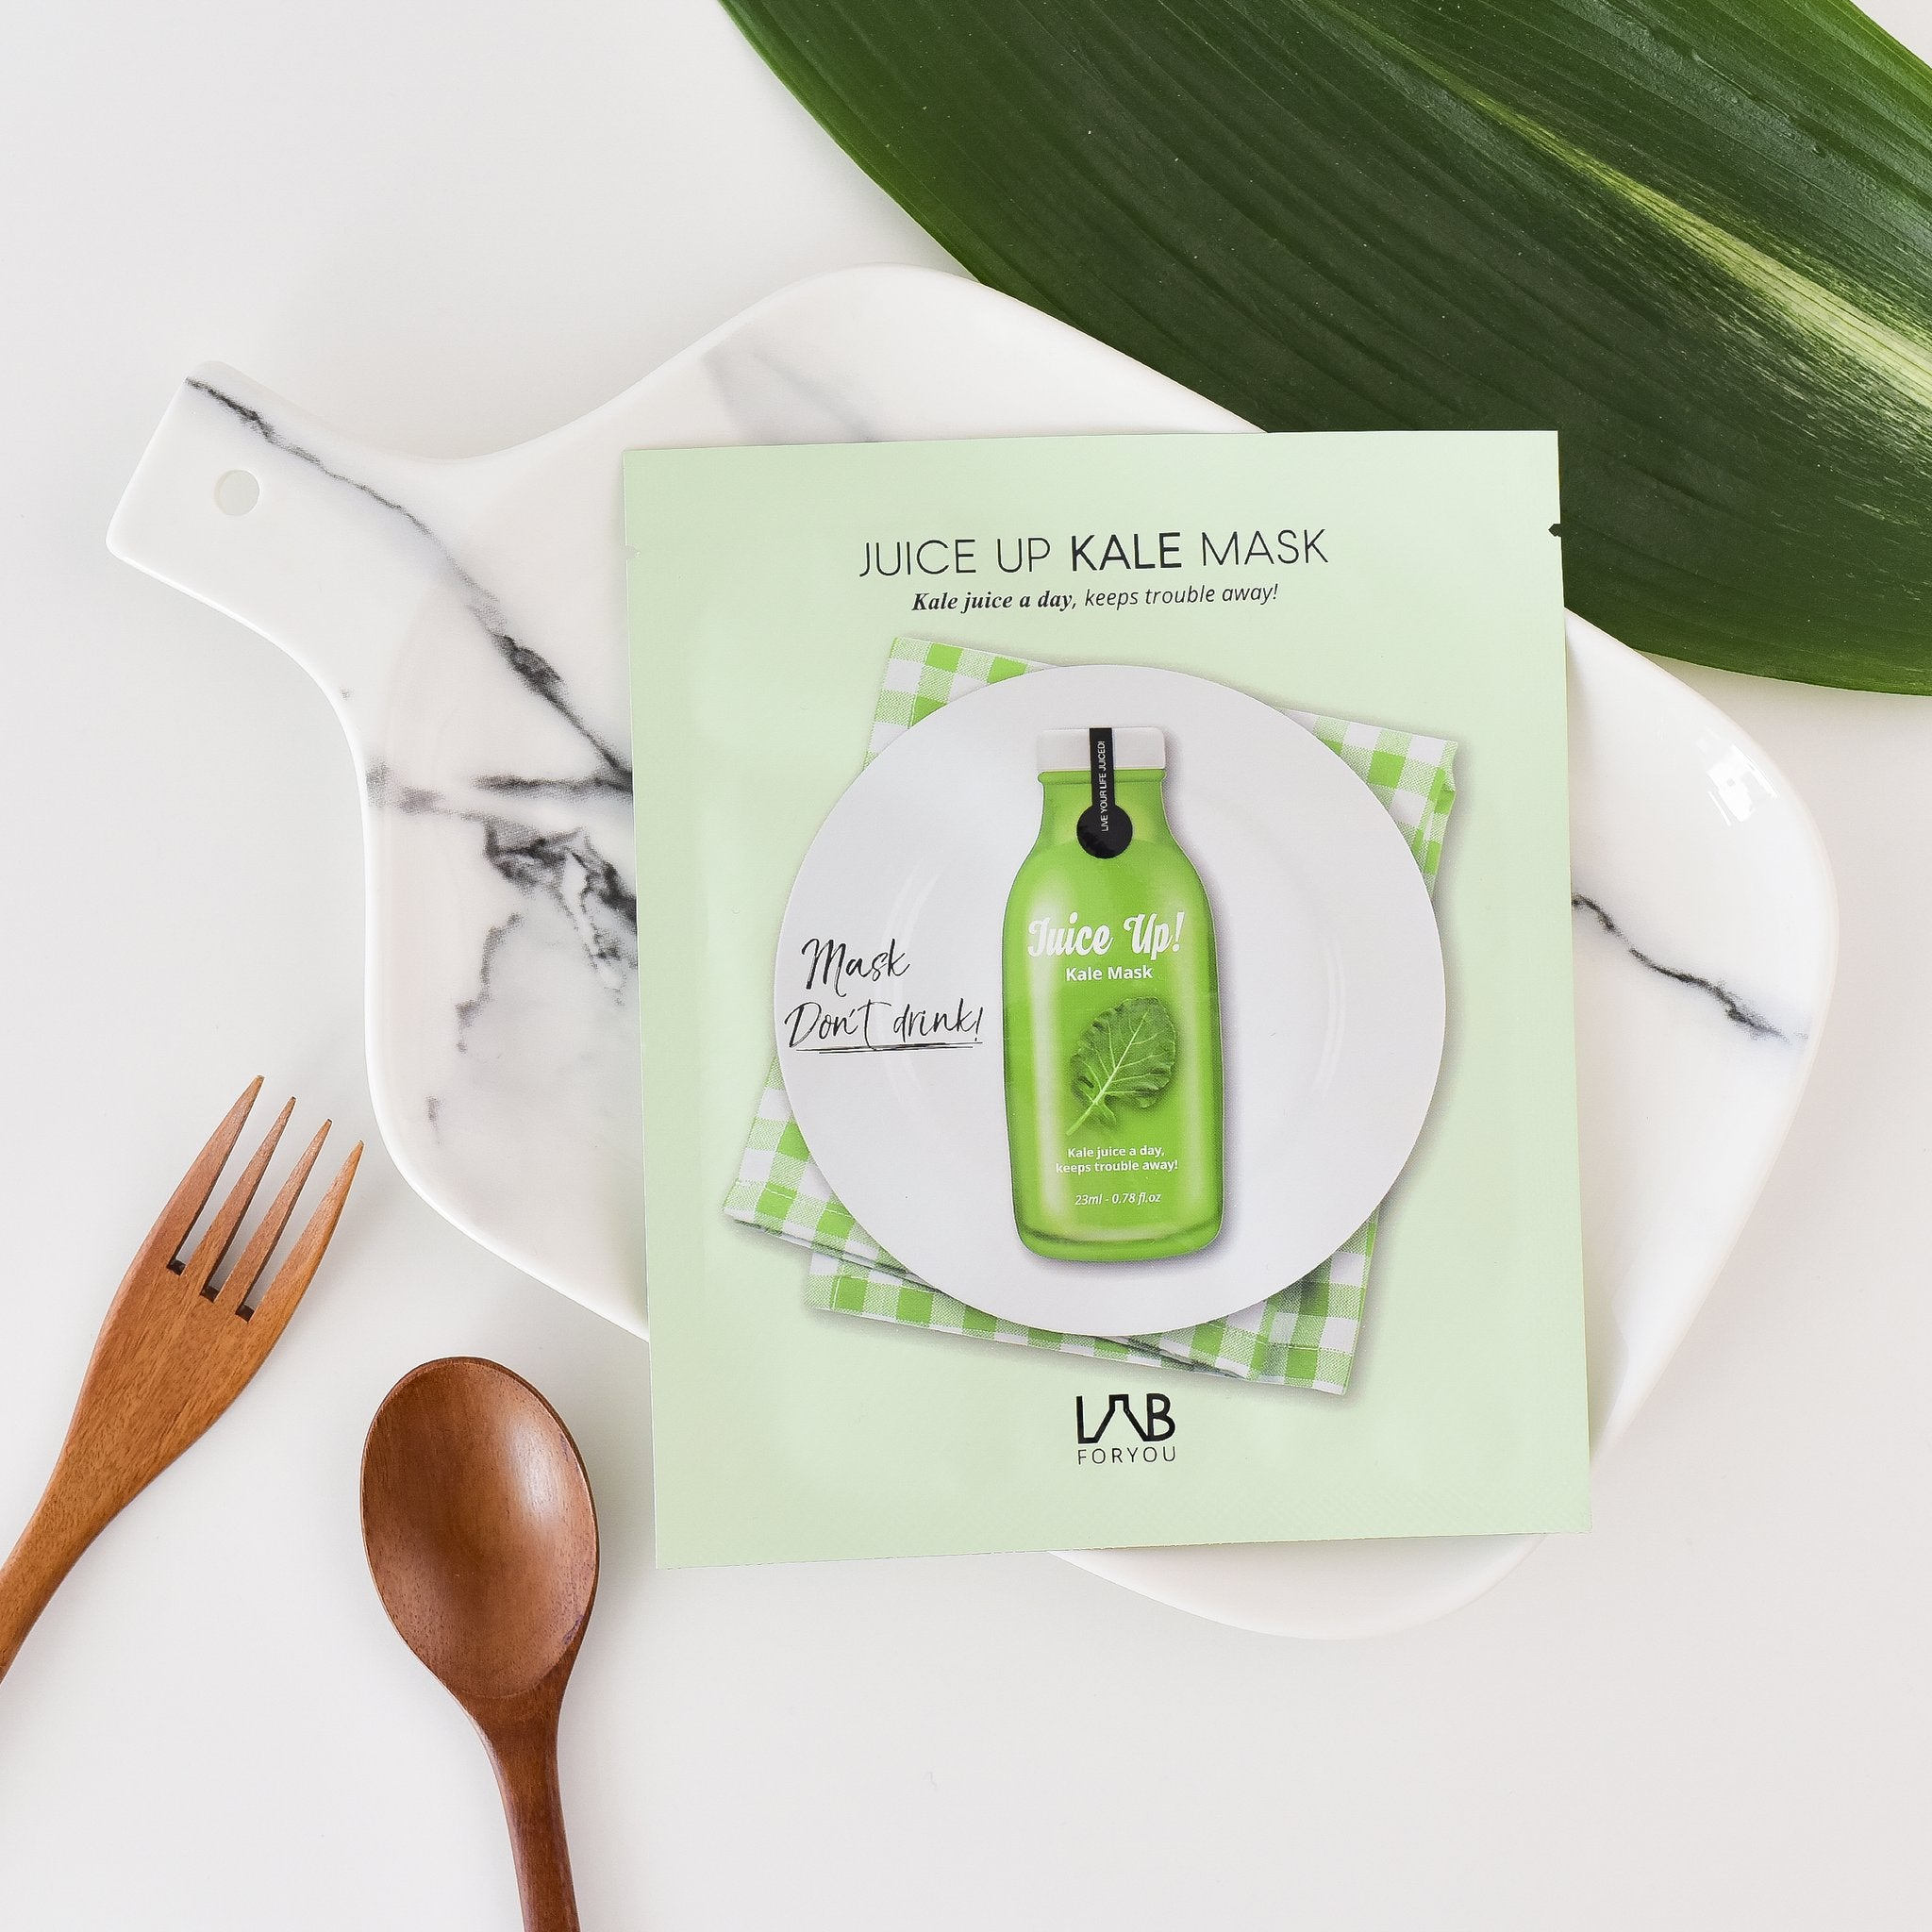 kale extract infused facial sheet mask gives nutrients to the skin